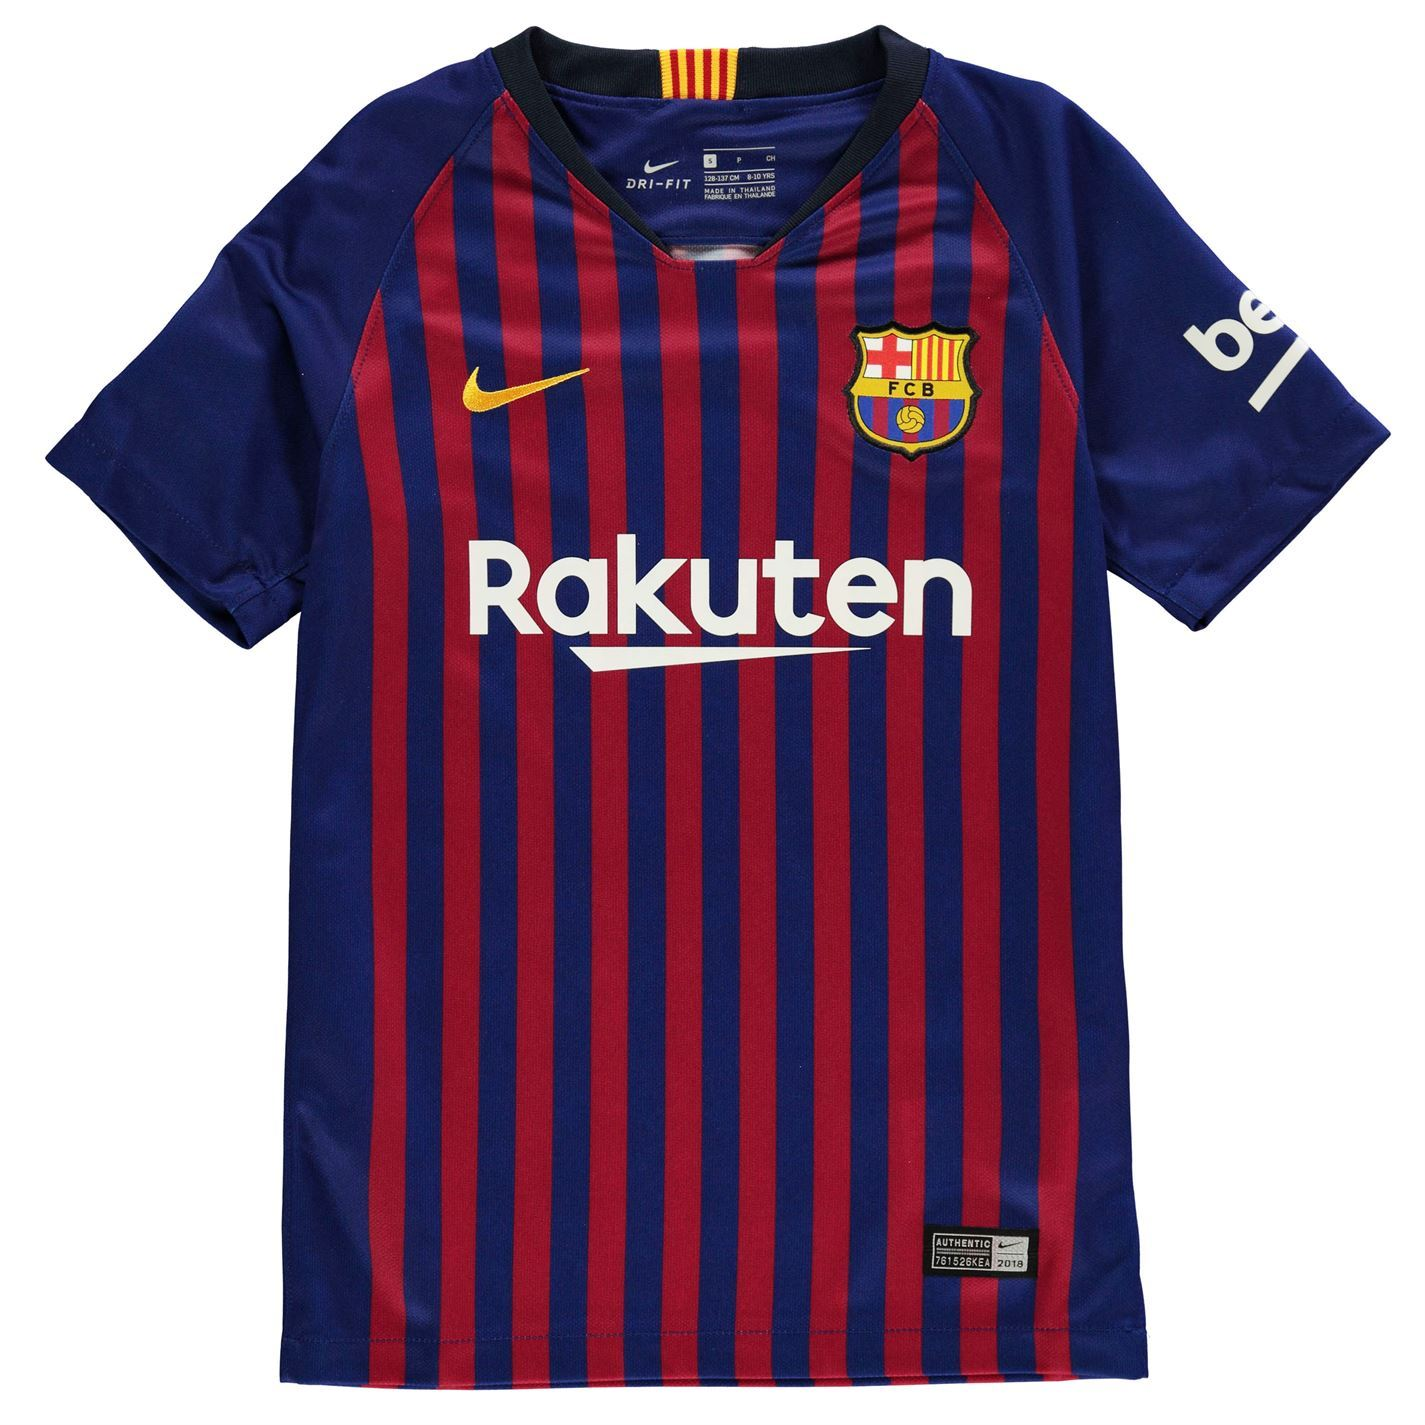 low priced 09ddf c8ebd Details about Nike Barcelona Home Jersey 2018 2019 Juniors Blue/Red  Football Soccer Shirt Top